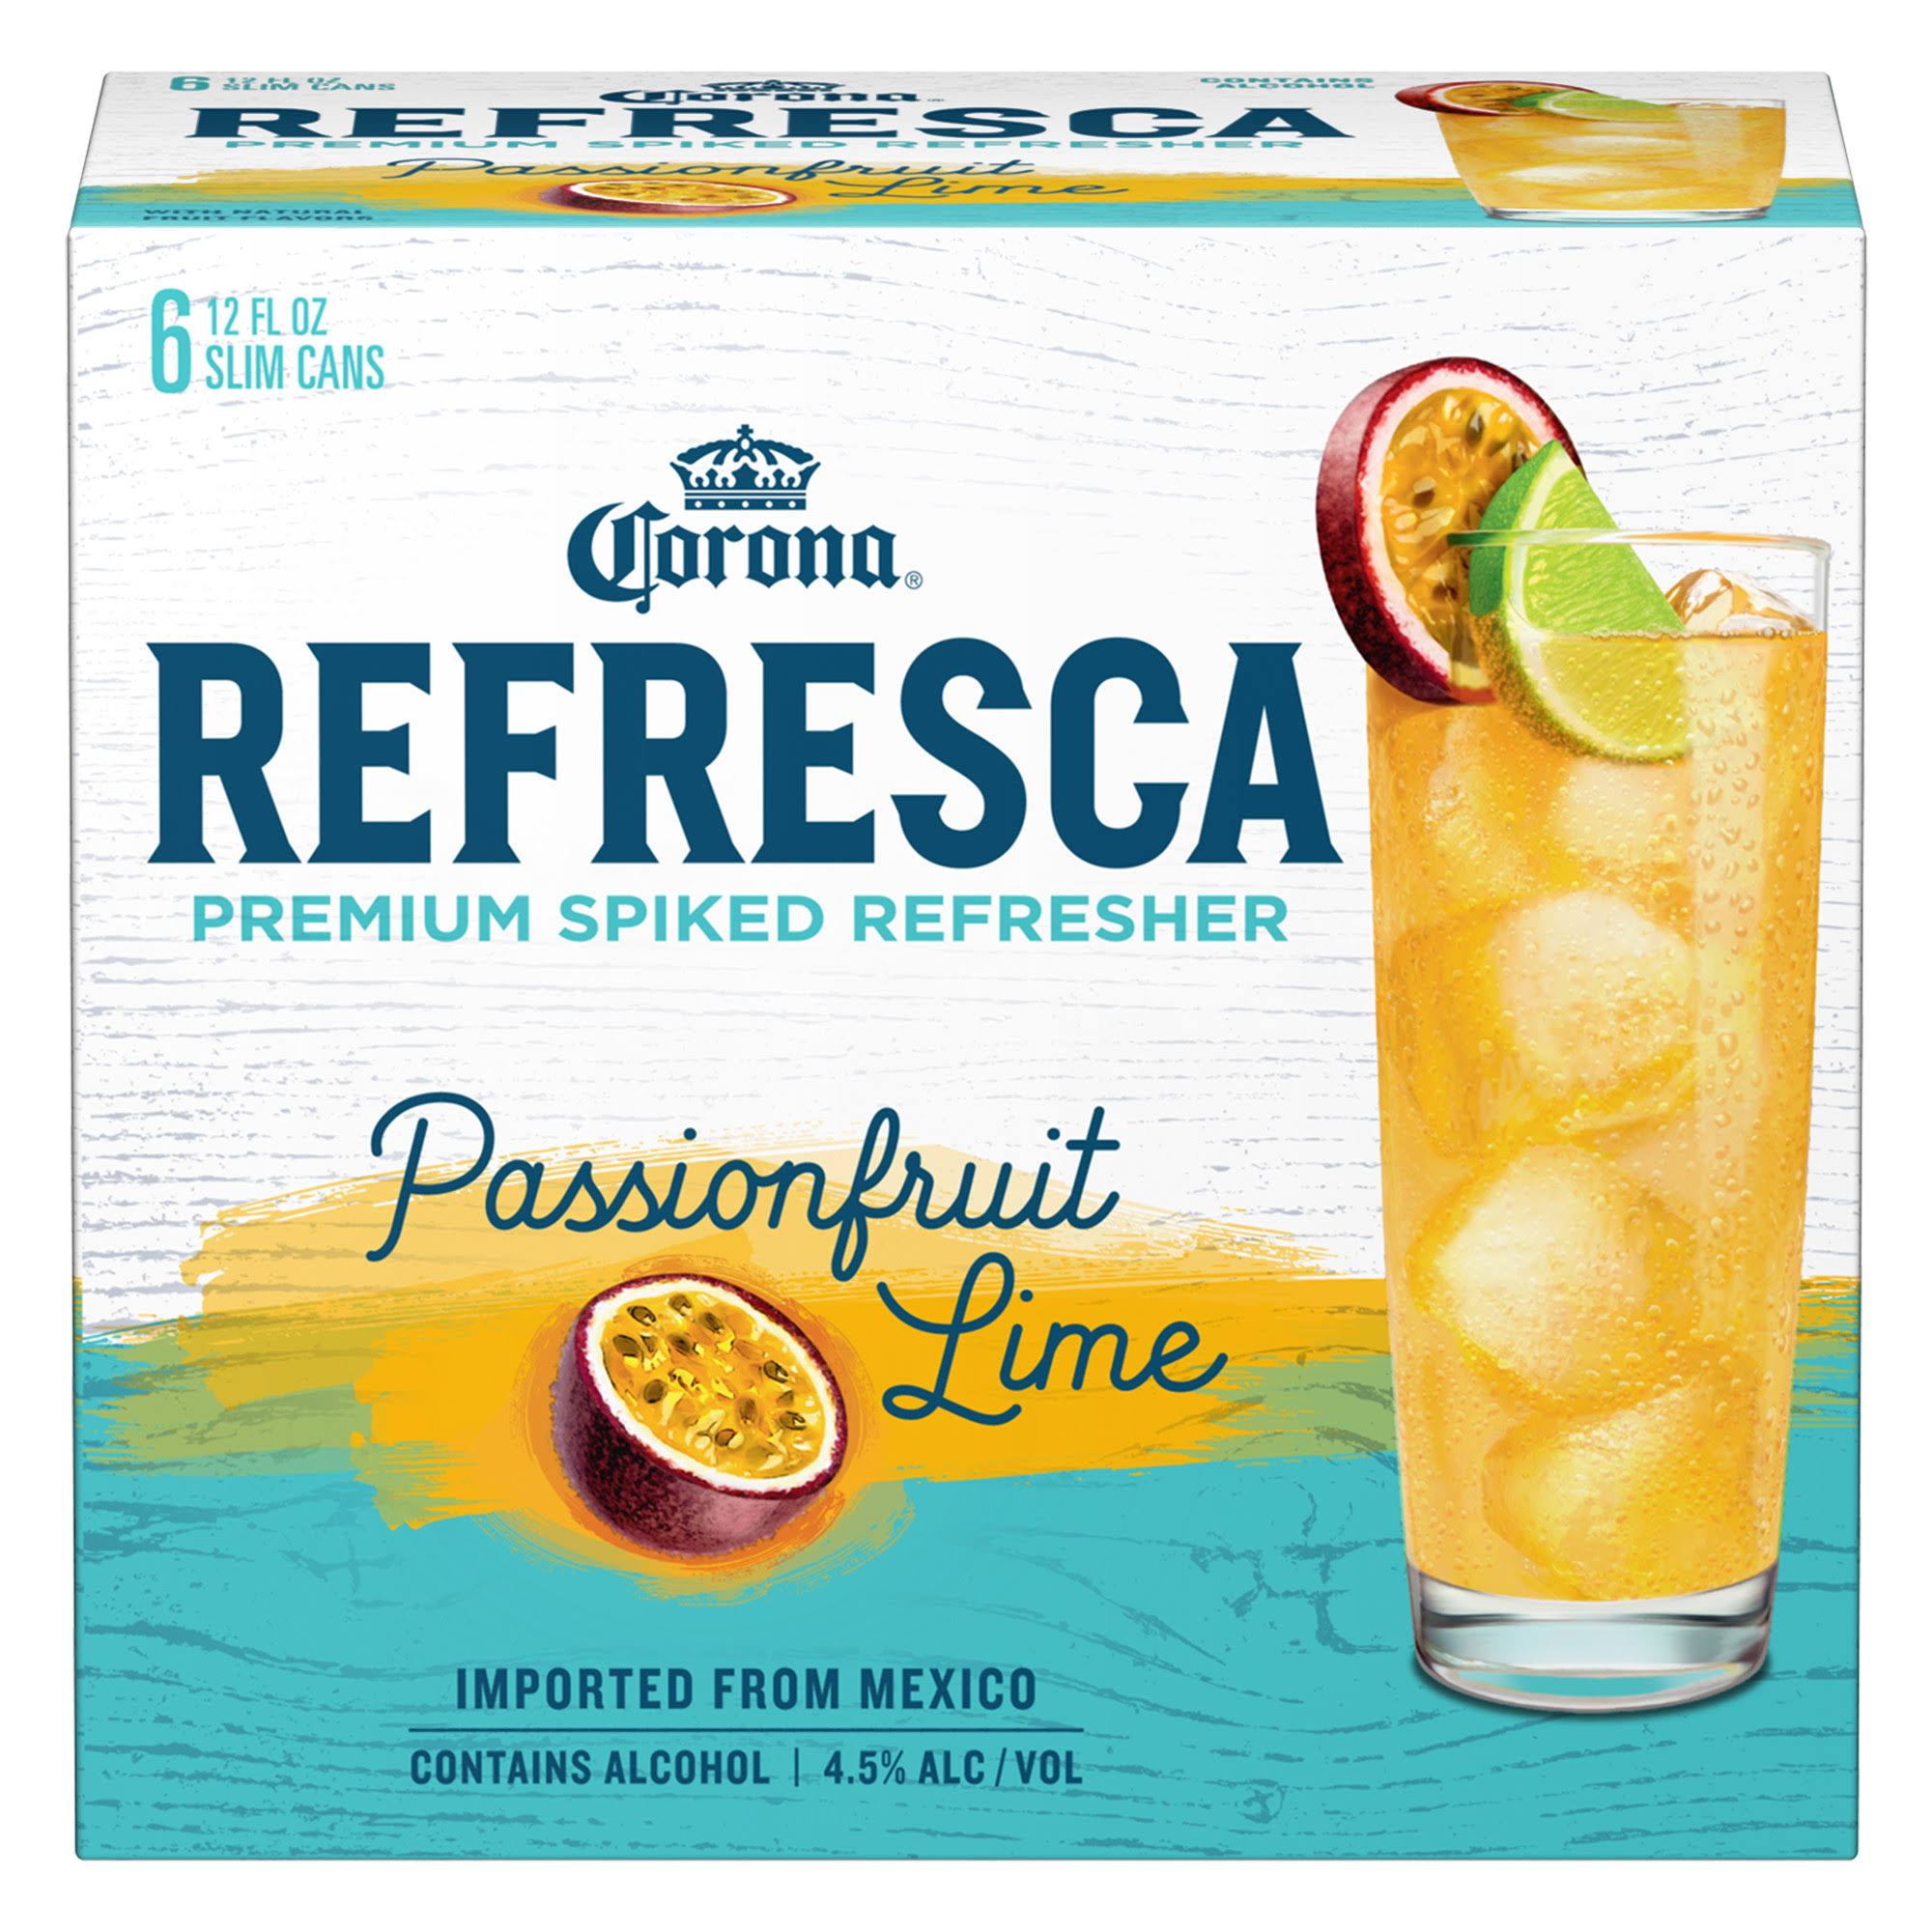 Corona Refresca Malt Beverage, Passionfruit Lime - 6 pack, 12 fl oz cans